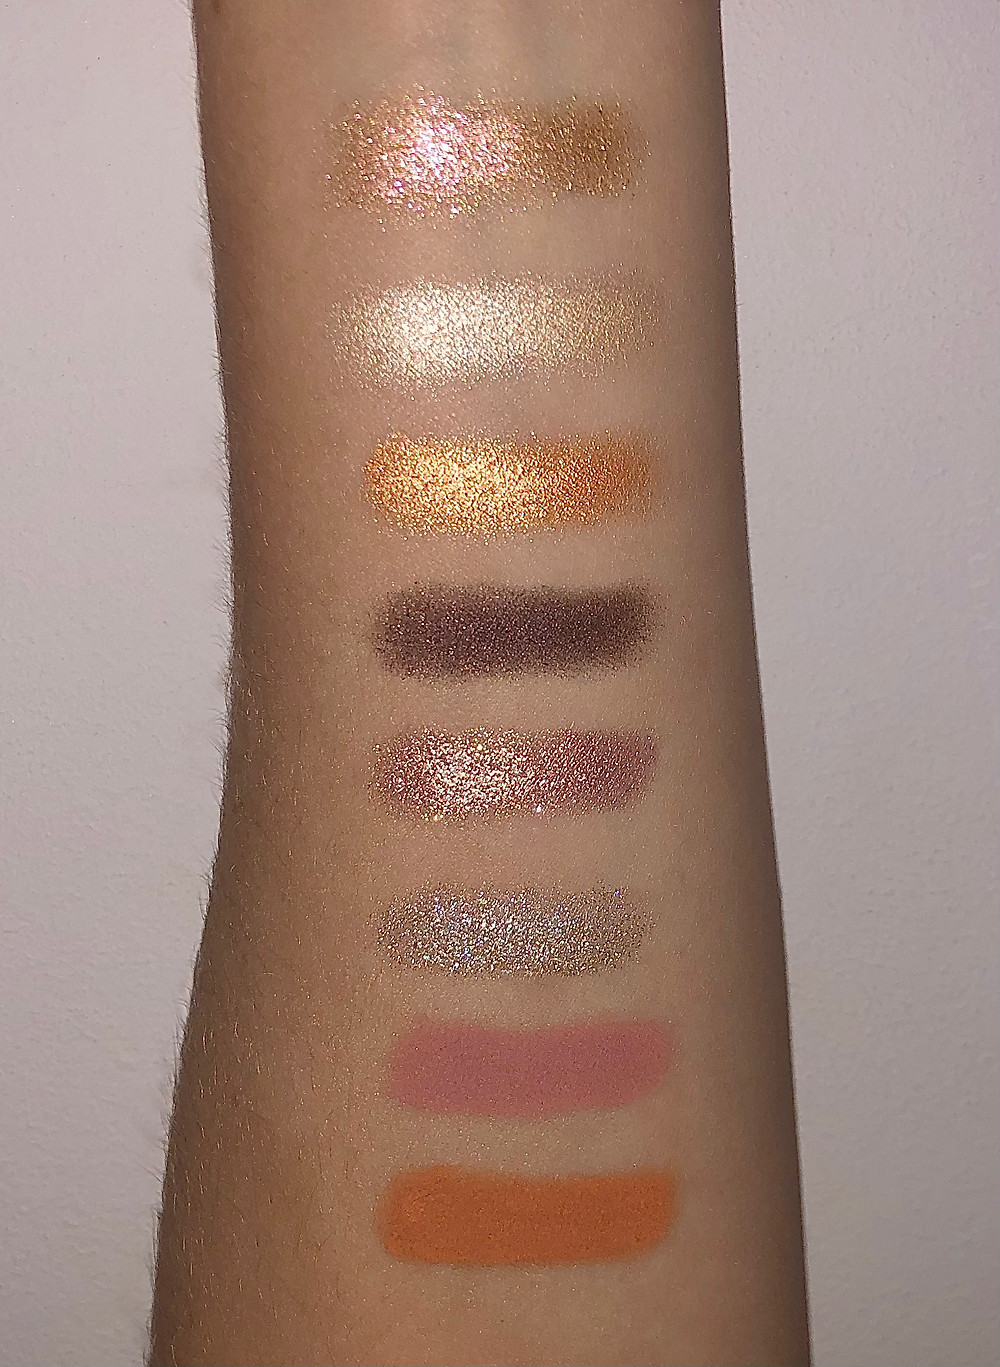 Beautonomy Custom Eyeshadow Palette Review Swatches